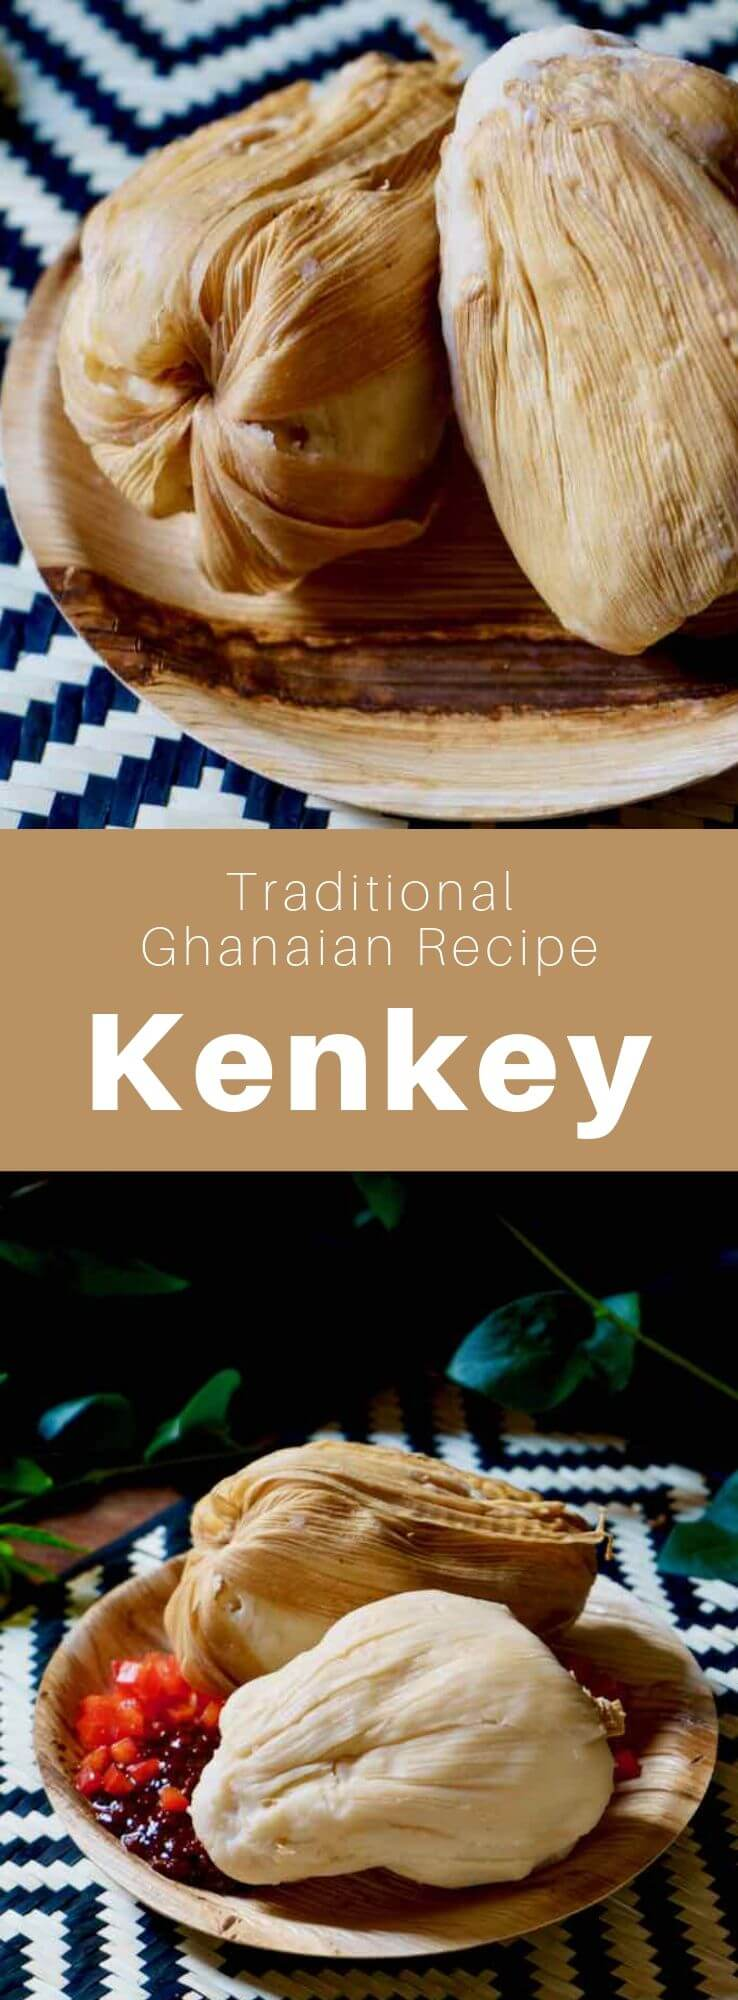 Kenkey is a traditional Ghanaian dish made from fermented white corn consumed by Ga people who call it komi and the Fante people who call it dokono. #Ghana #GhanaianCuisine #GhanaianFood #GhanaianRecipe #AfricanCuisine #AfricanFood #AfricanRecipe #WorldCuisine #196flavors